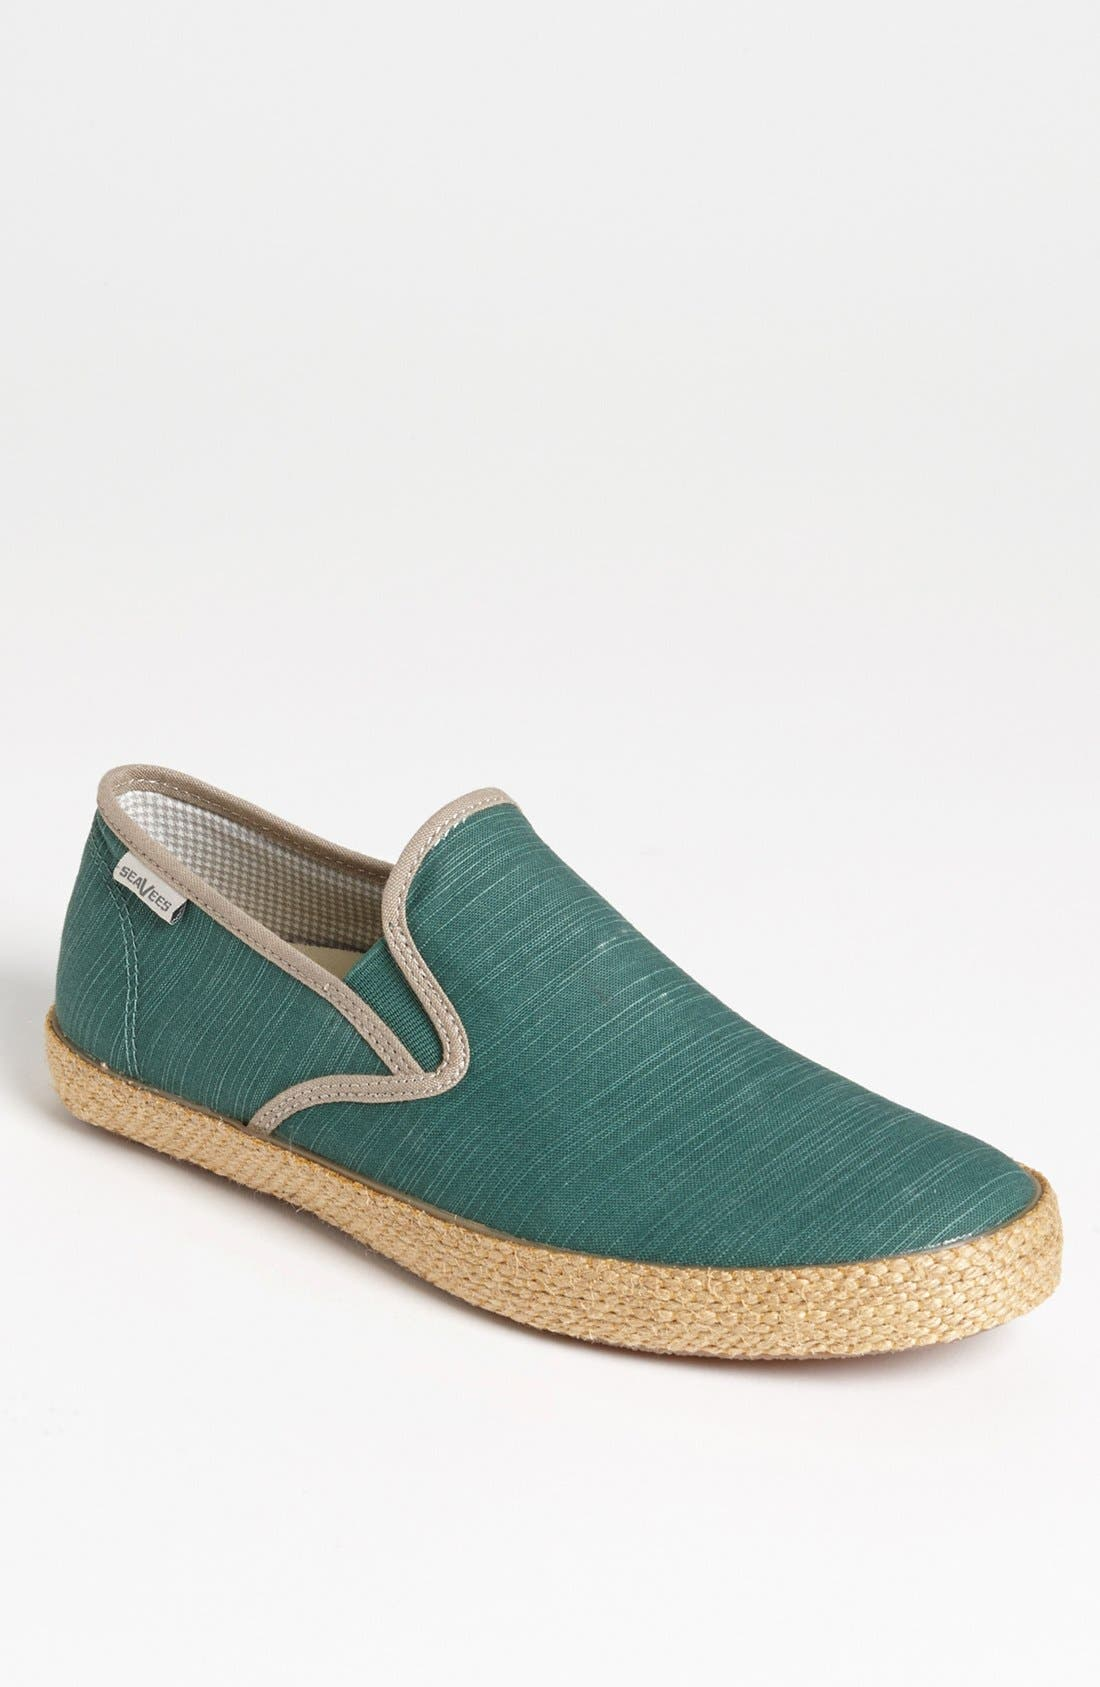 Alternate Image 1 Selected - SeaVees '02/64 Beetles Baja' Espadrille Slip-On